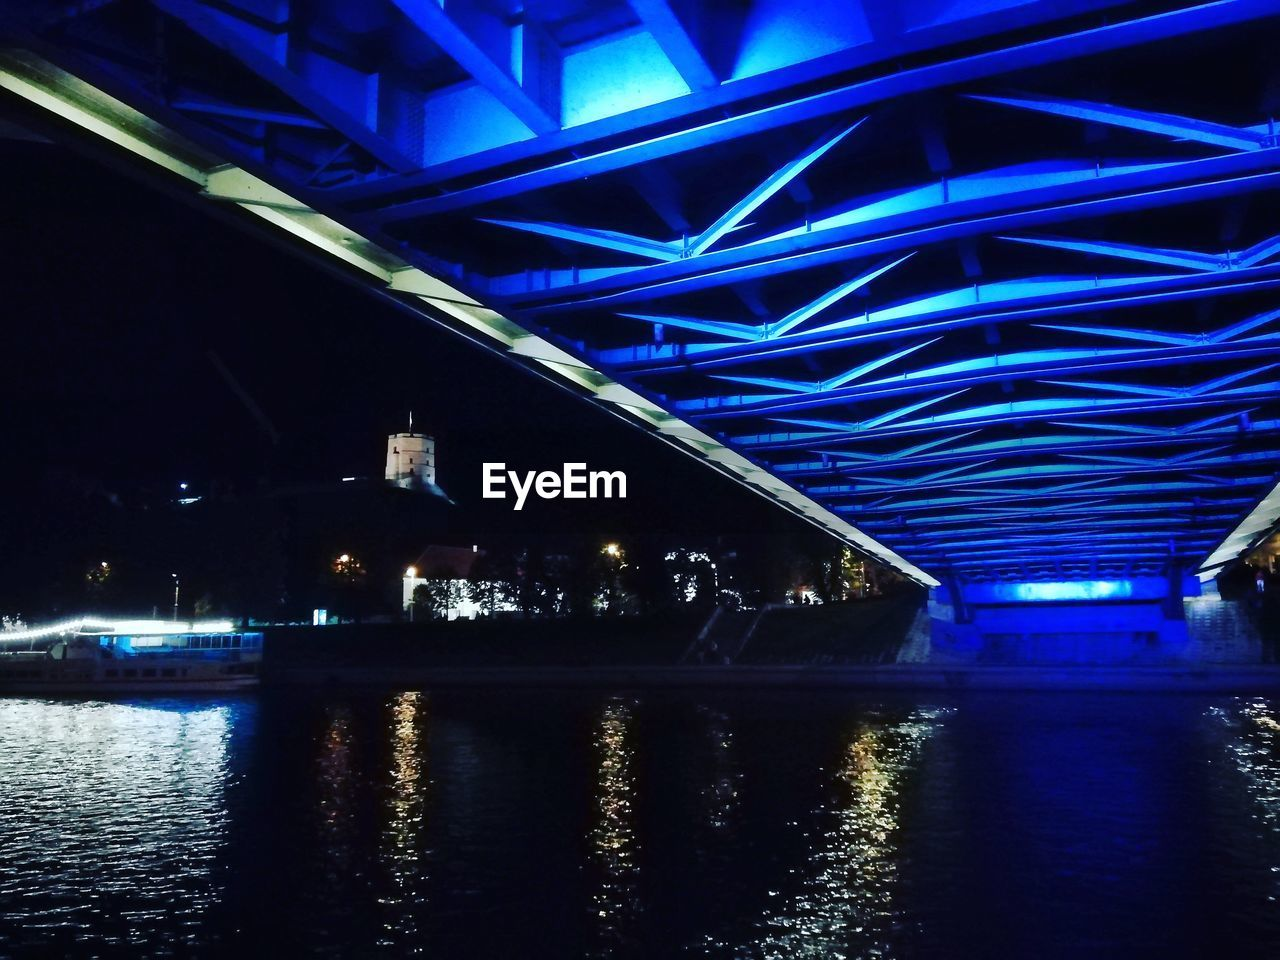 illuminated, night, architecture, reflection, built structure, water, waterfront, bridge, bridge - man made structure, river, lighting equipment, no people, connection, transportation, building exterior, nature, city, blue, glowing, light, ceiling, underneath